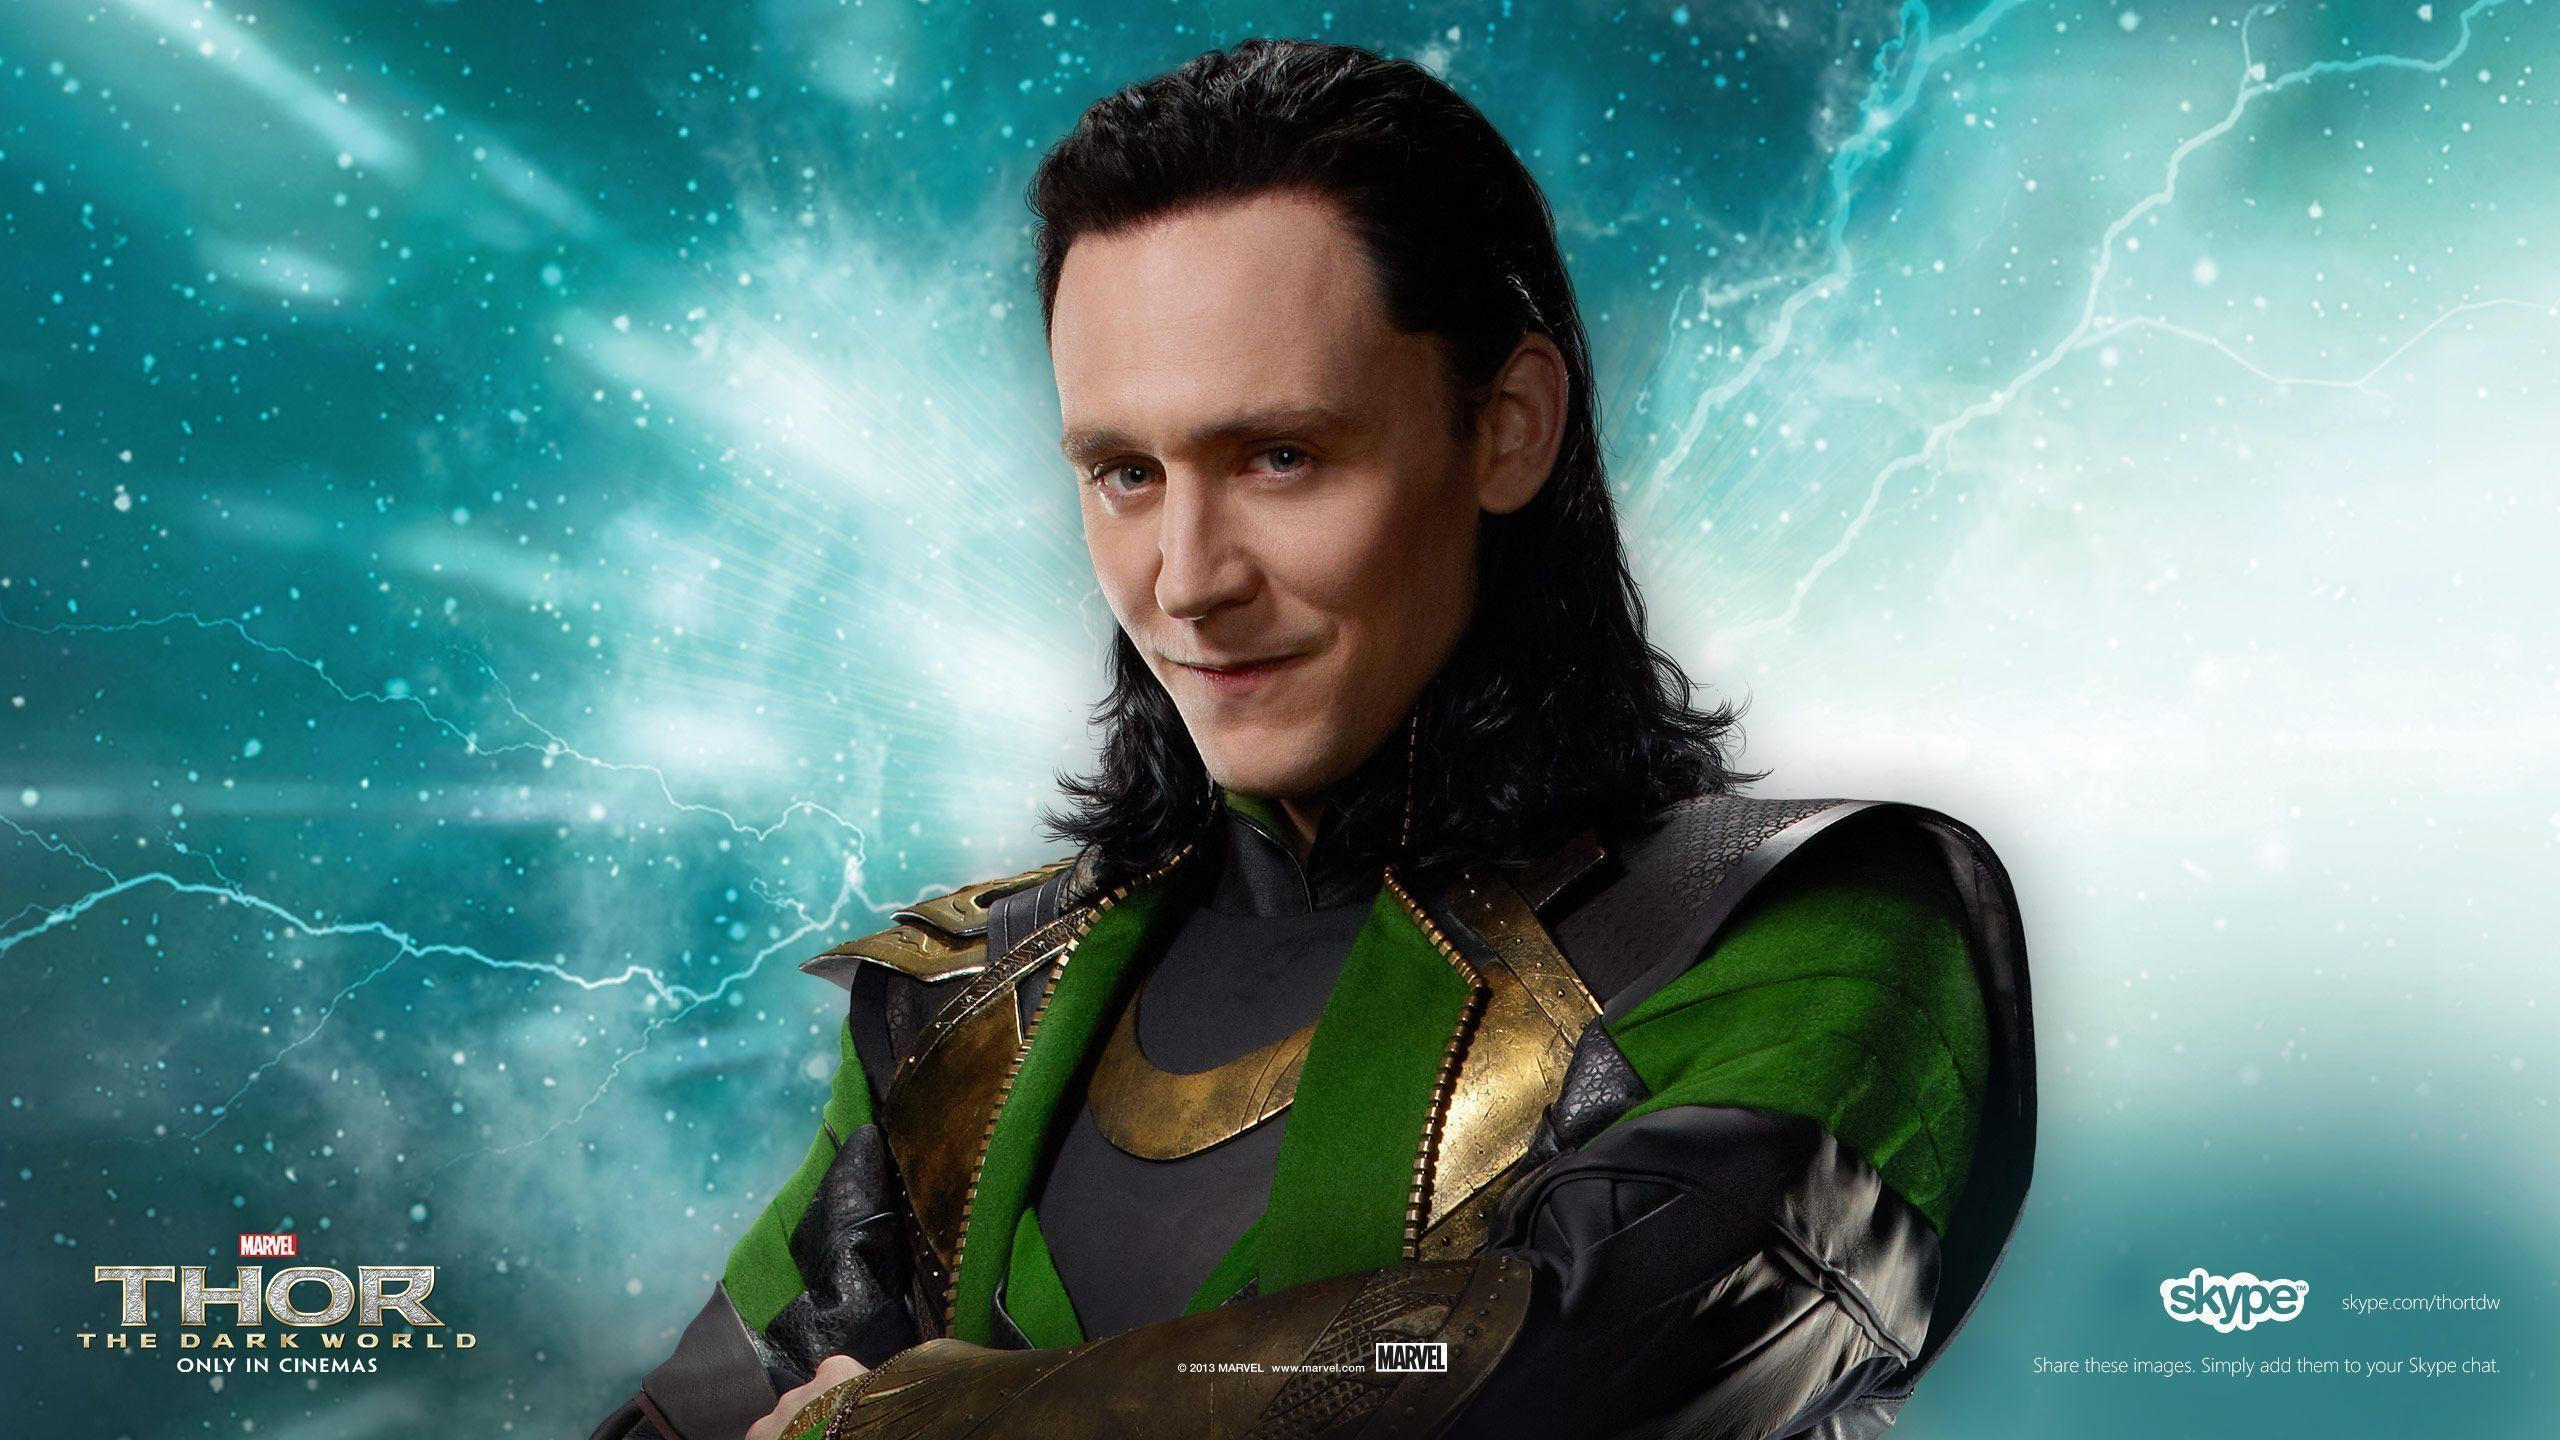 loki background for tigger - photo #20